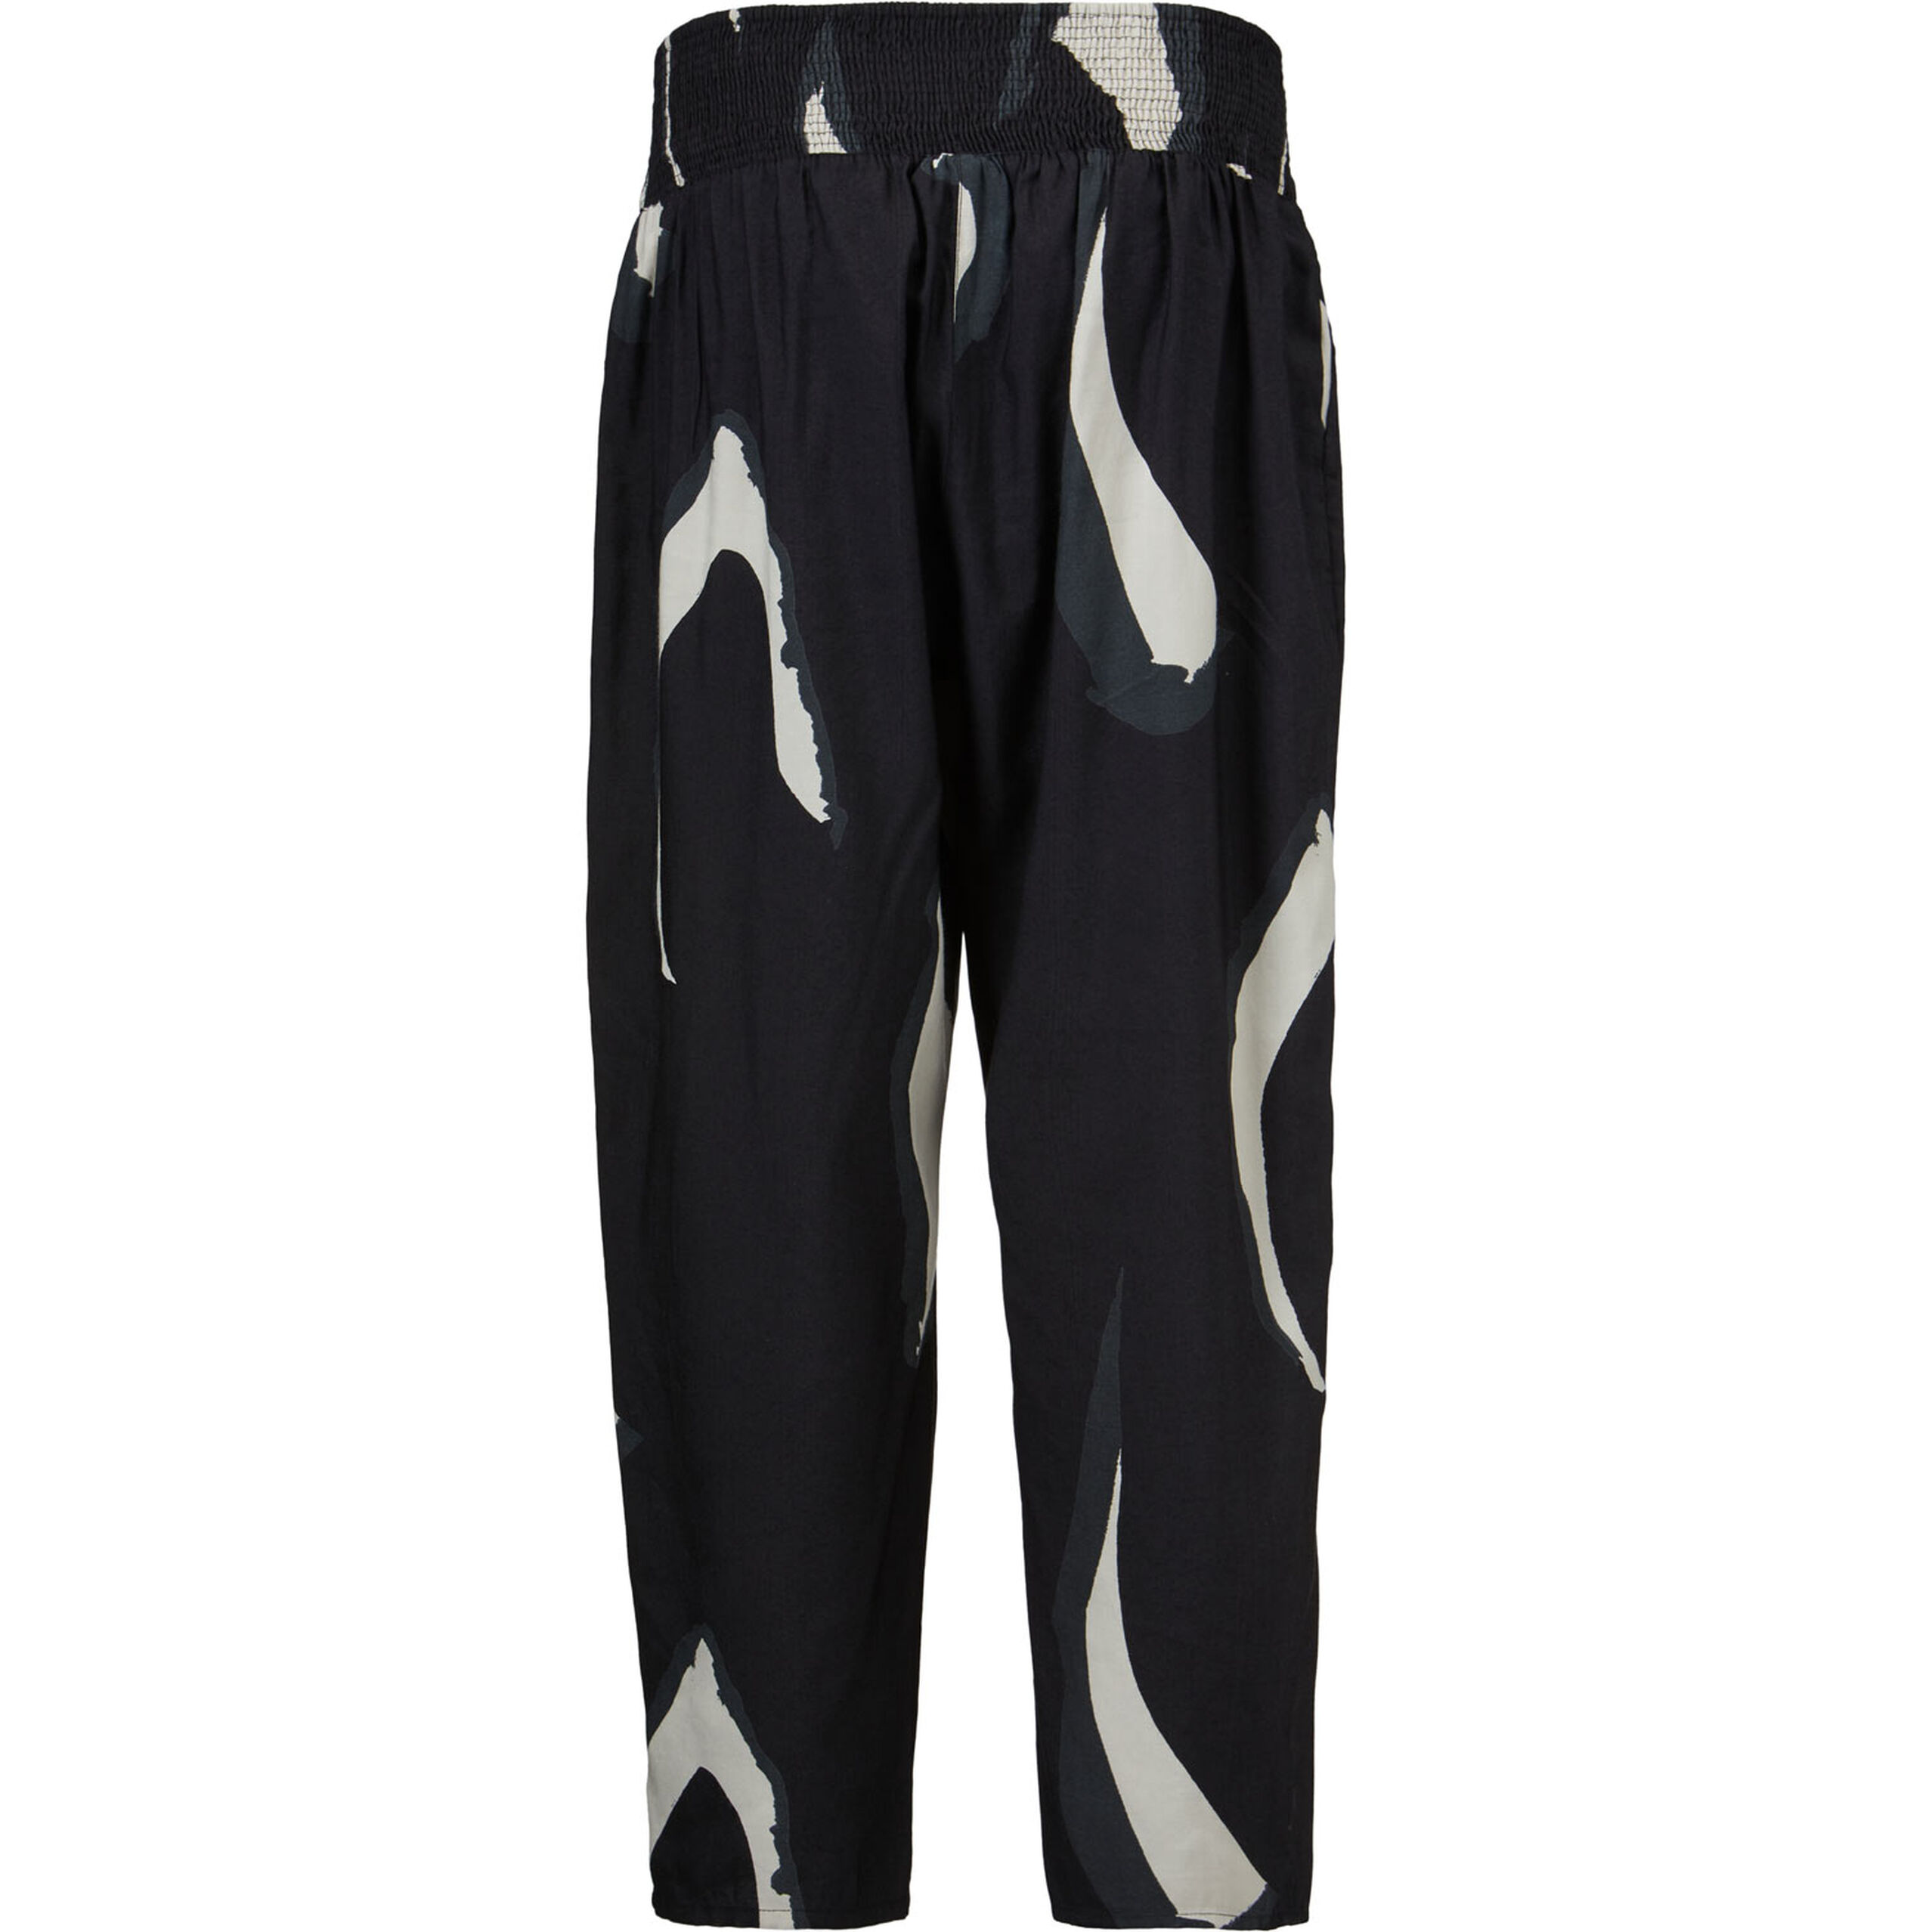 PAIJA TROUSERS, Black, hi-res